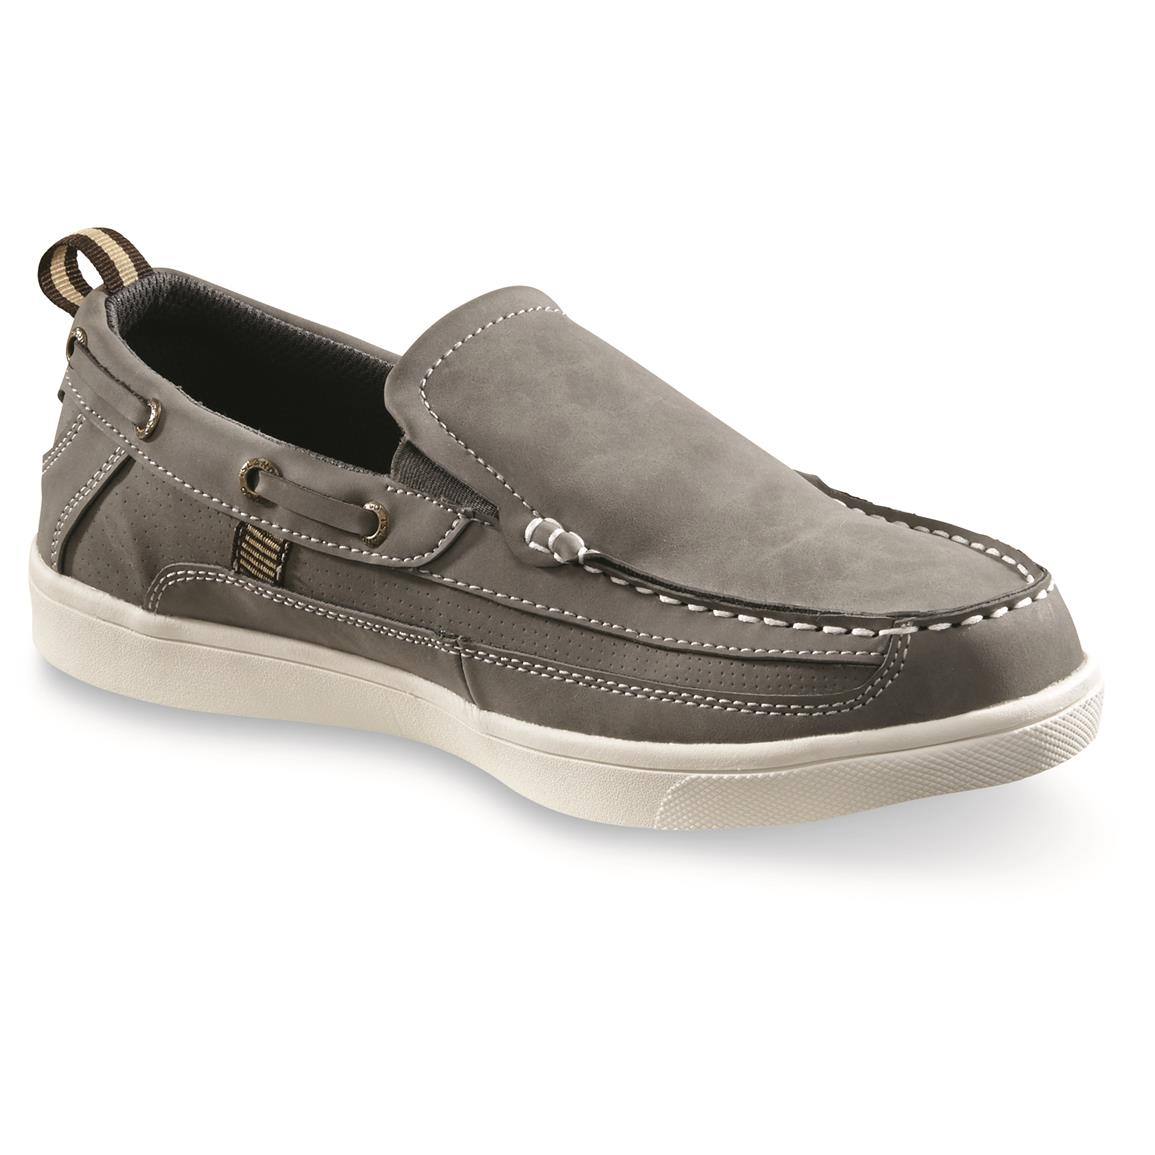 Hang Ten Men's Pier Slip-On Boat Shoes, Gray